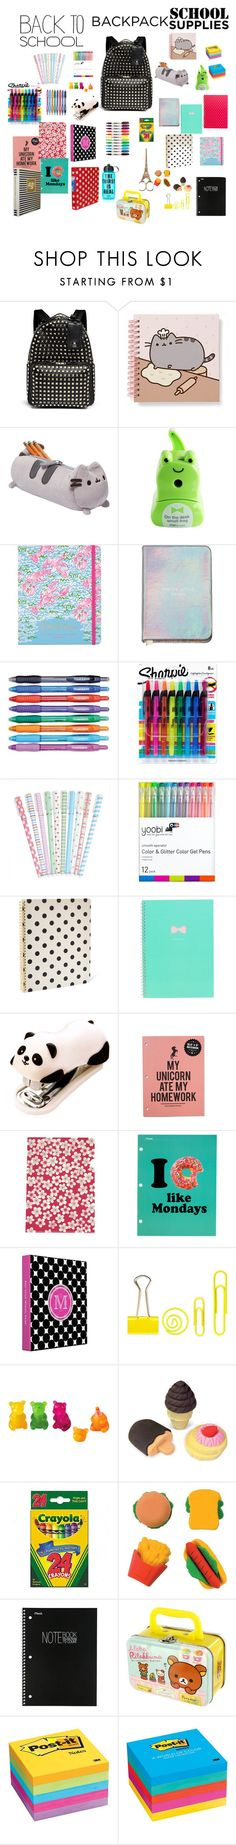 """""""#back2school"""" by molleighderp ❤ liked on Polyvore featuring Valentino, Gund, Lilly Pulitzer, Paper Mate, Sharpie, Yoobi, Kate Spade, Mead, Post-It and Victoria's Secret PINK"""